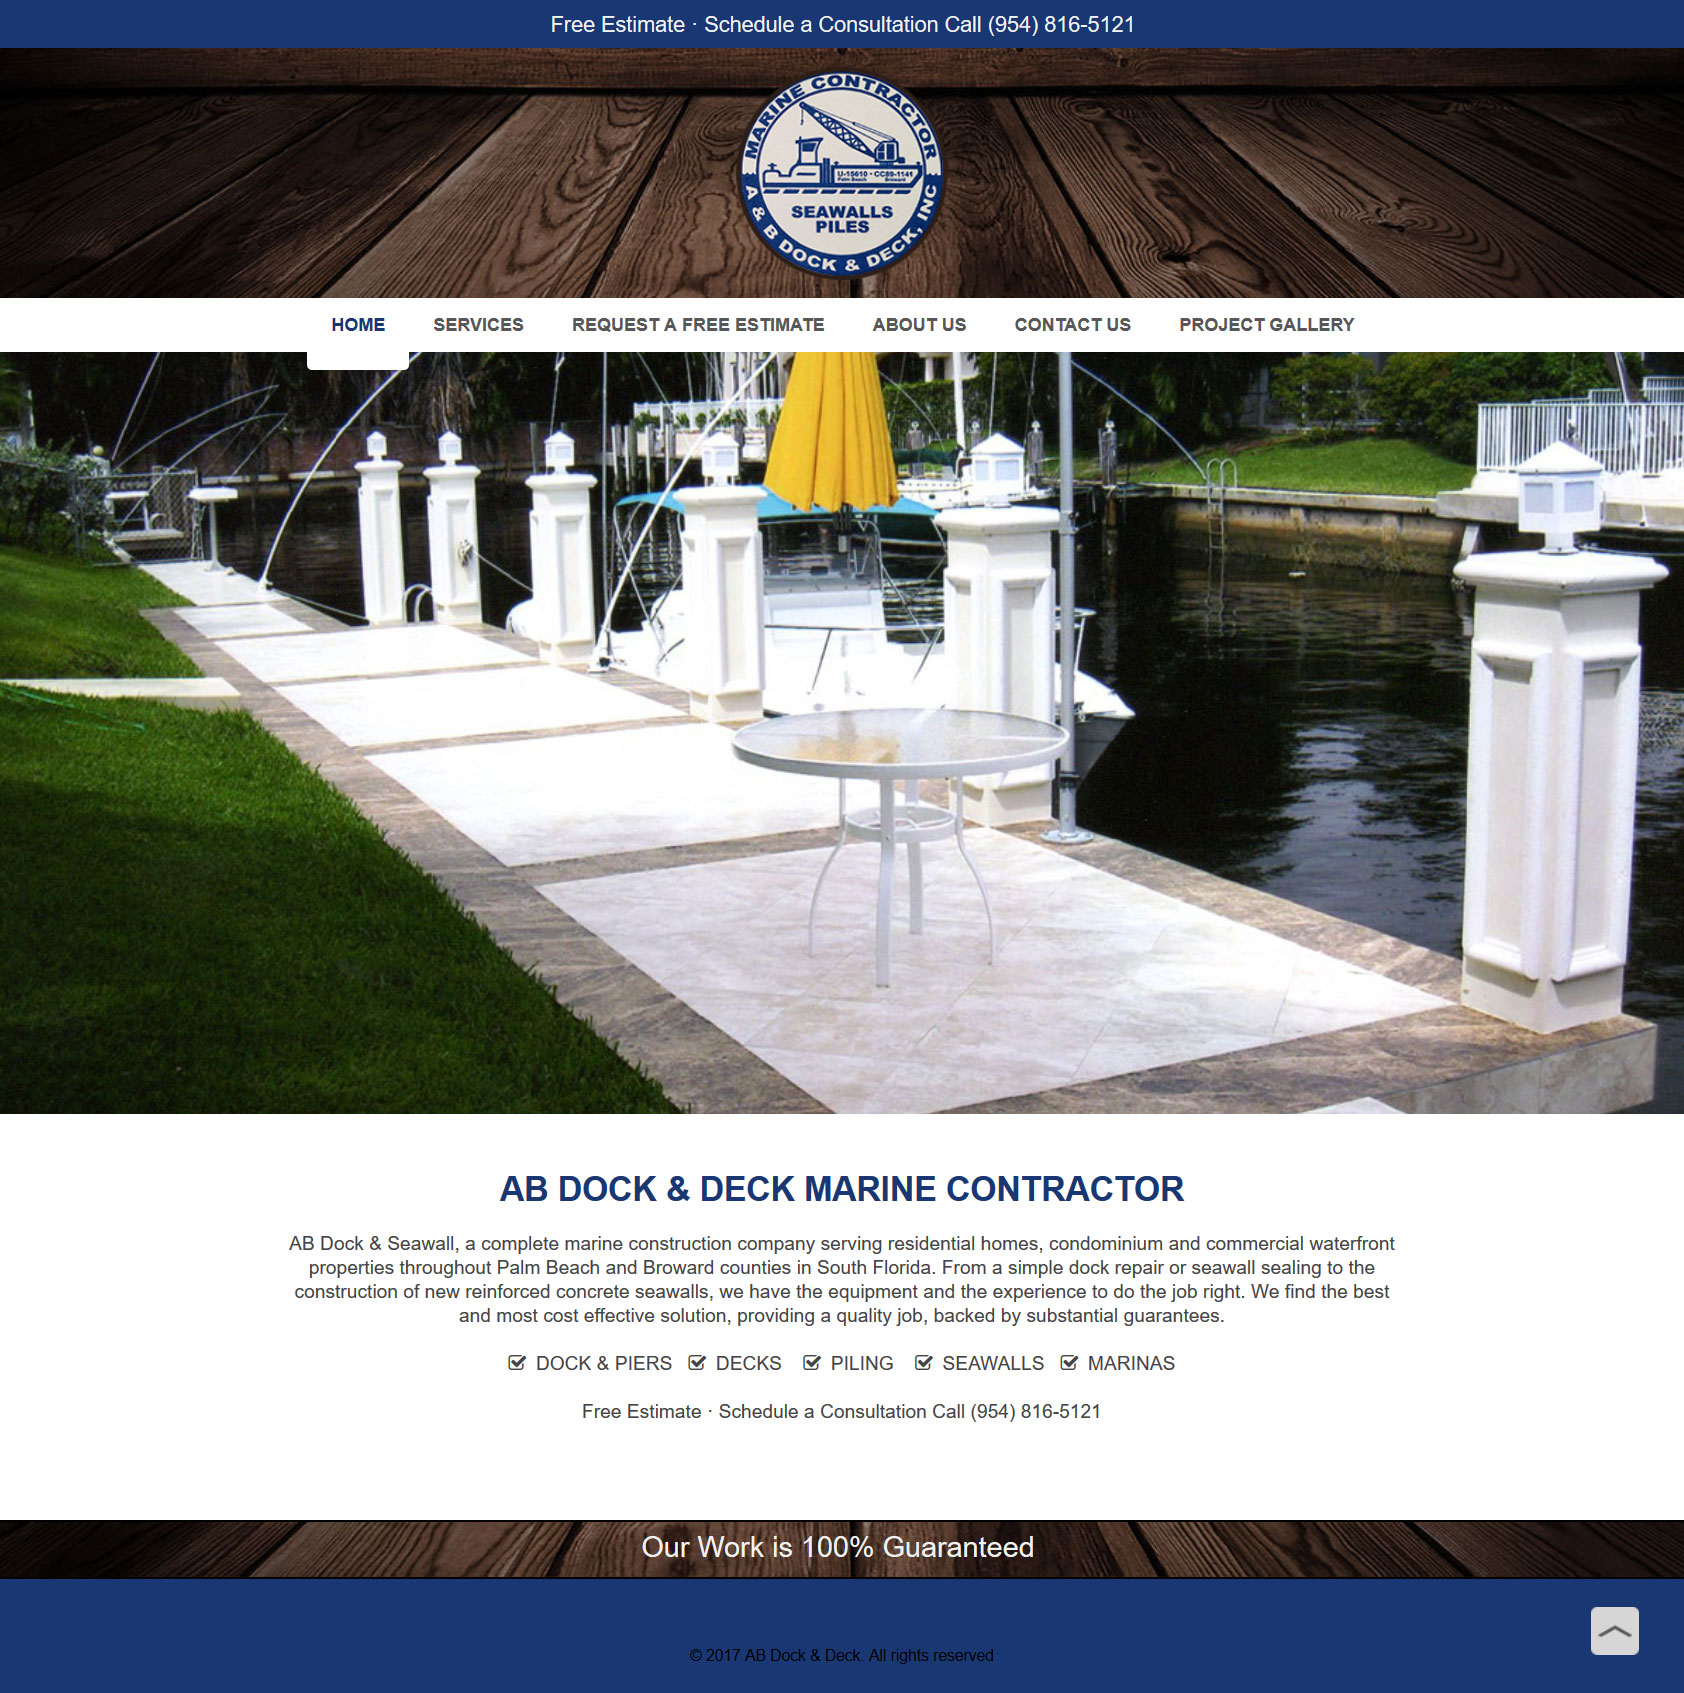 AB-DOCK-&-DECK-MARINE-CONTRACTOR.jpg